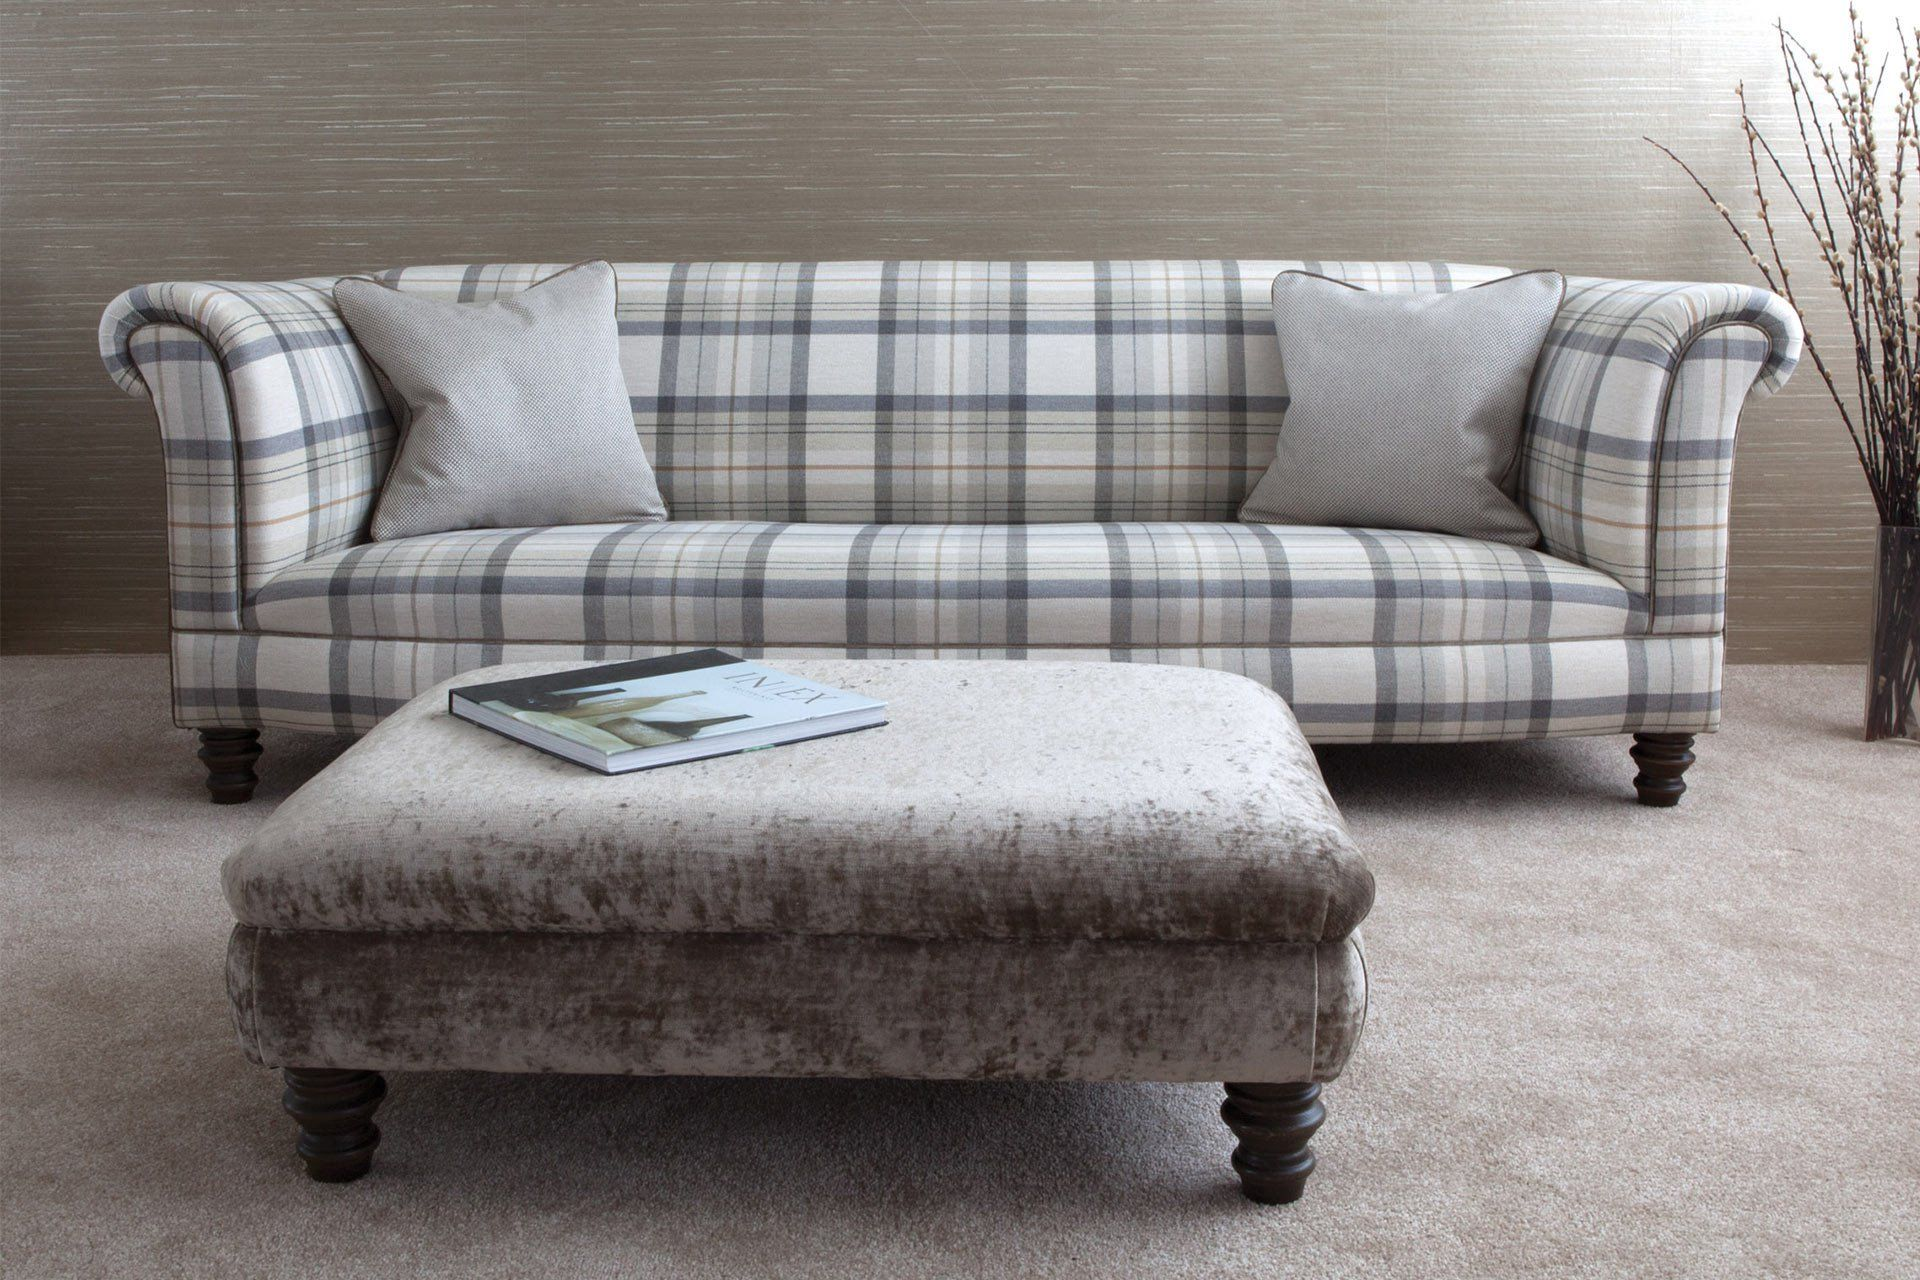 218cm Standard Back Sofa With Balmoral Check Fabric In Pumice Colour & Milo Pebble Cushions & Piping